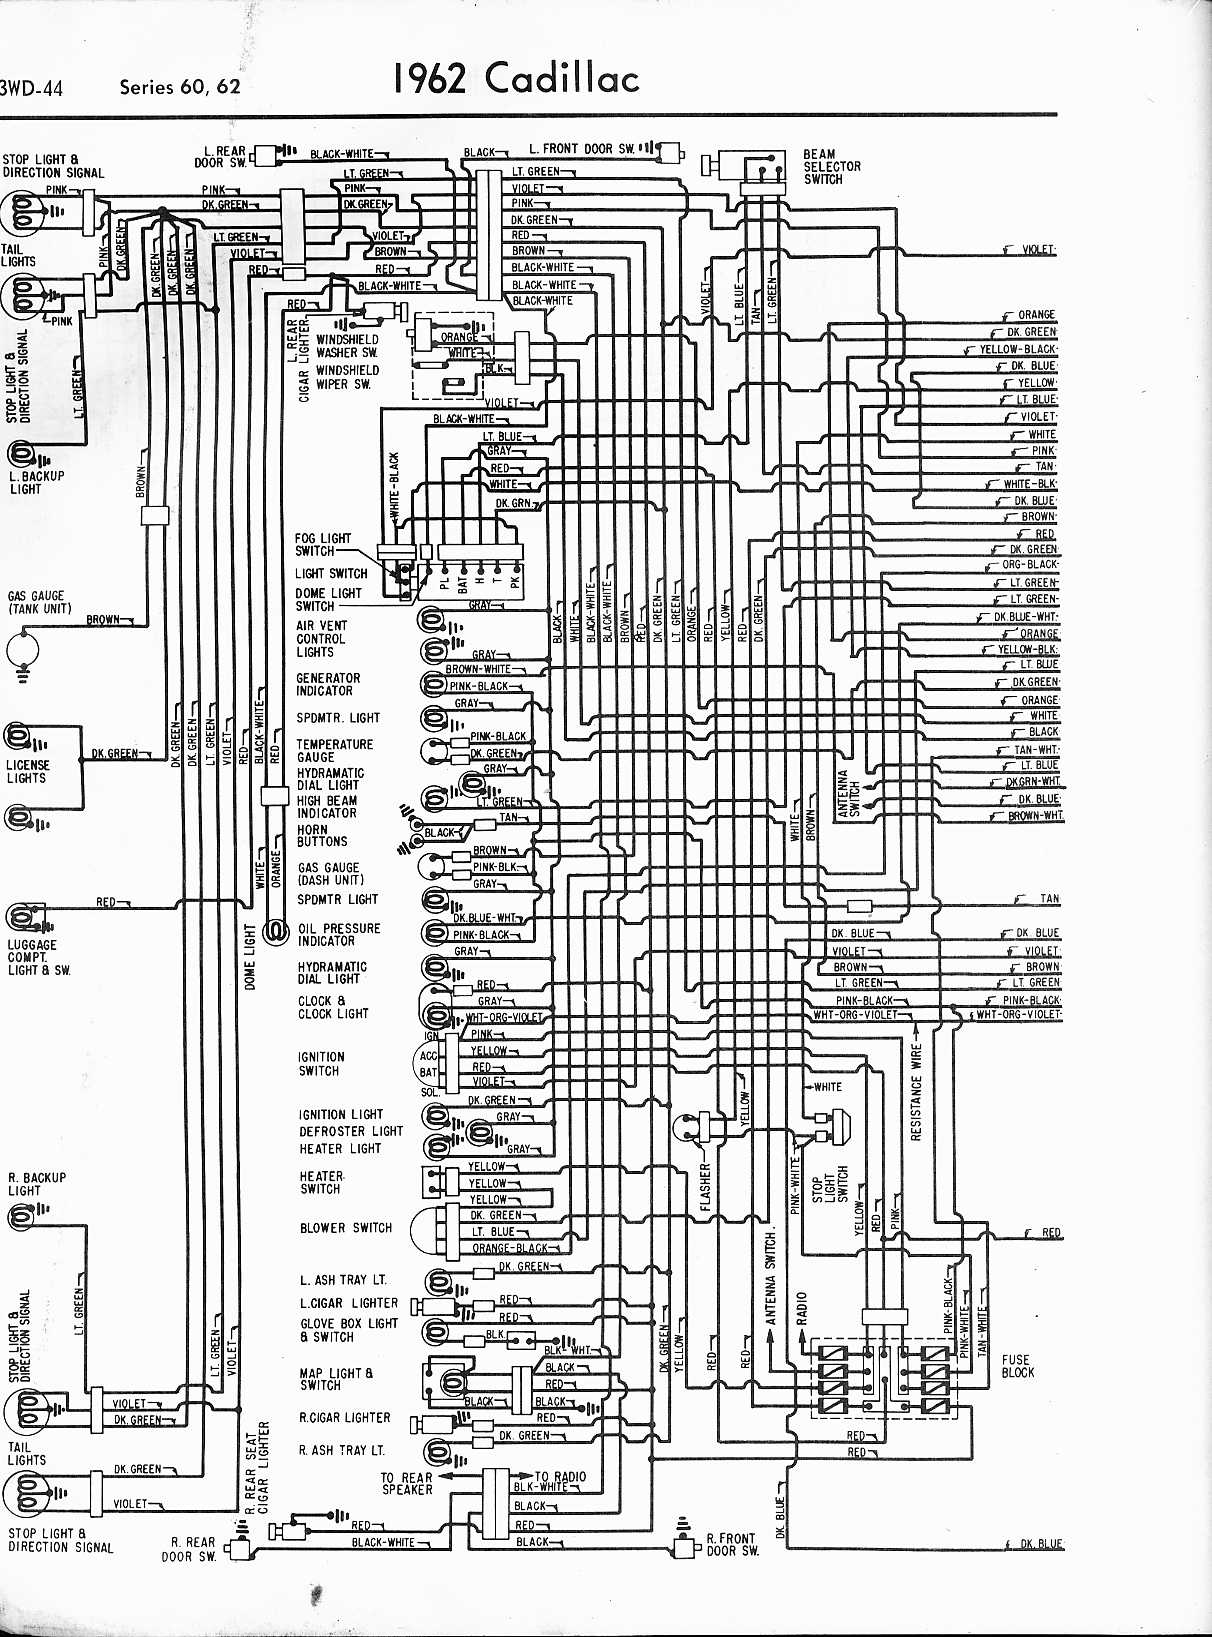 hight resolution of 1962 cadillac wiring diagram wiring diagram technic 1962 cadillac 390 engine diagram